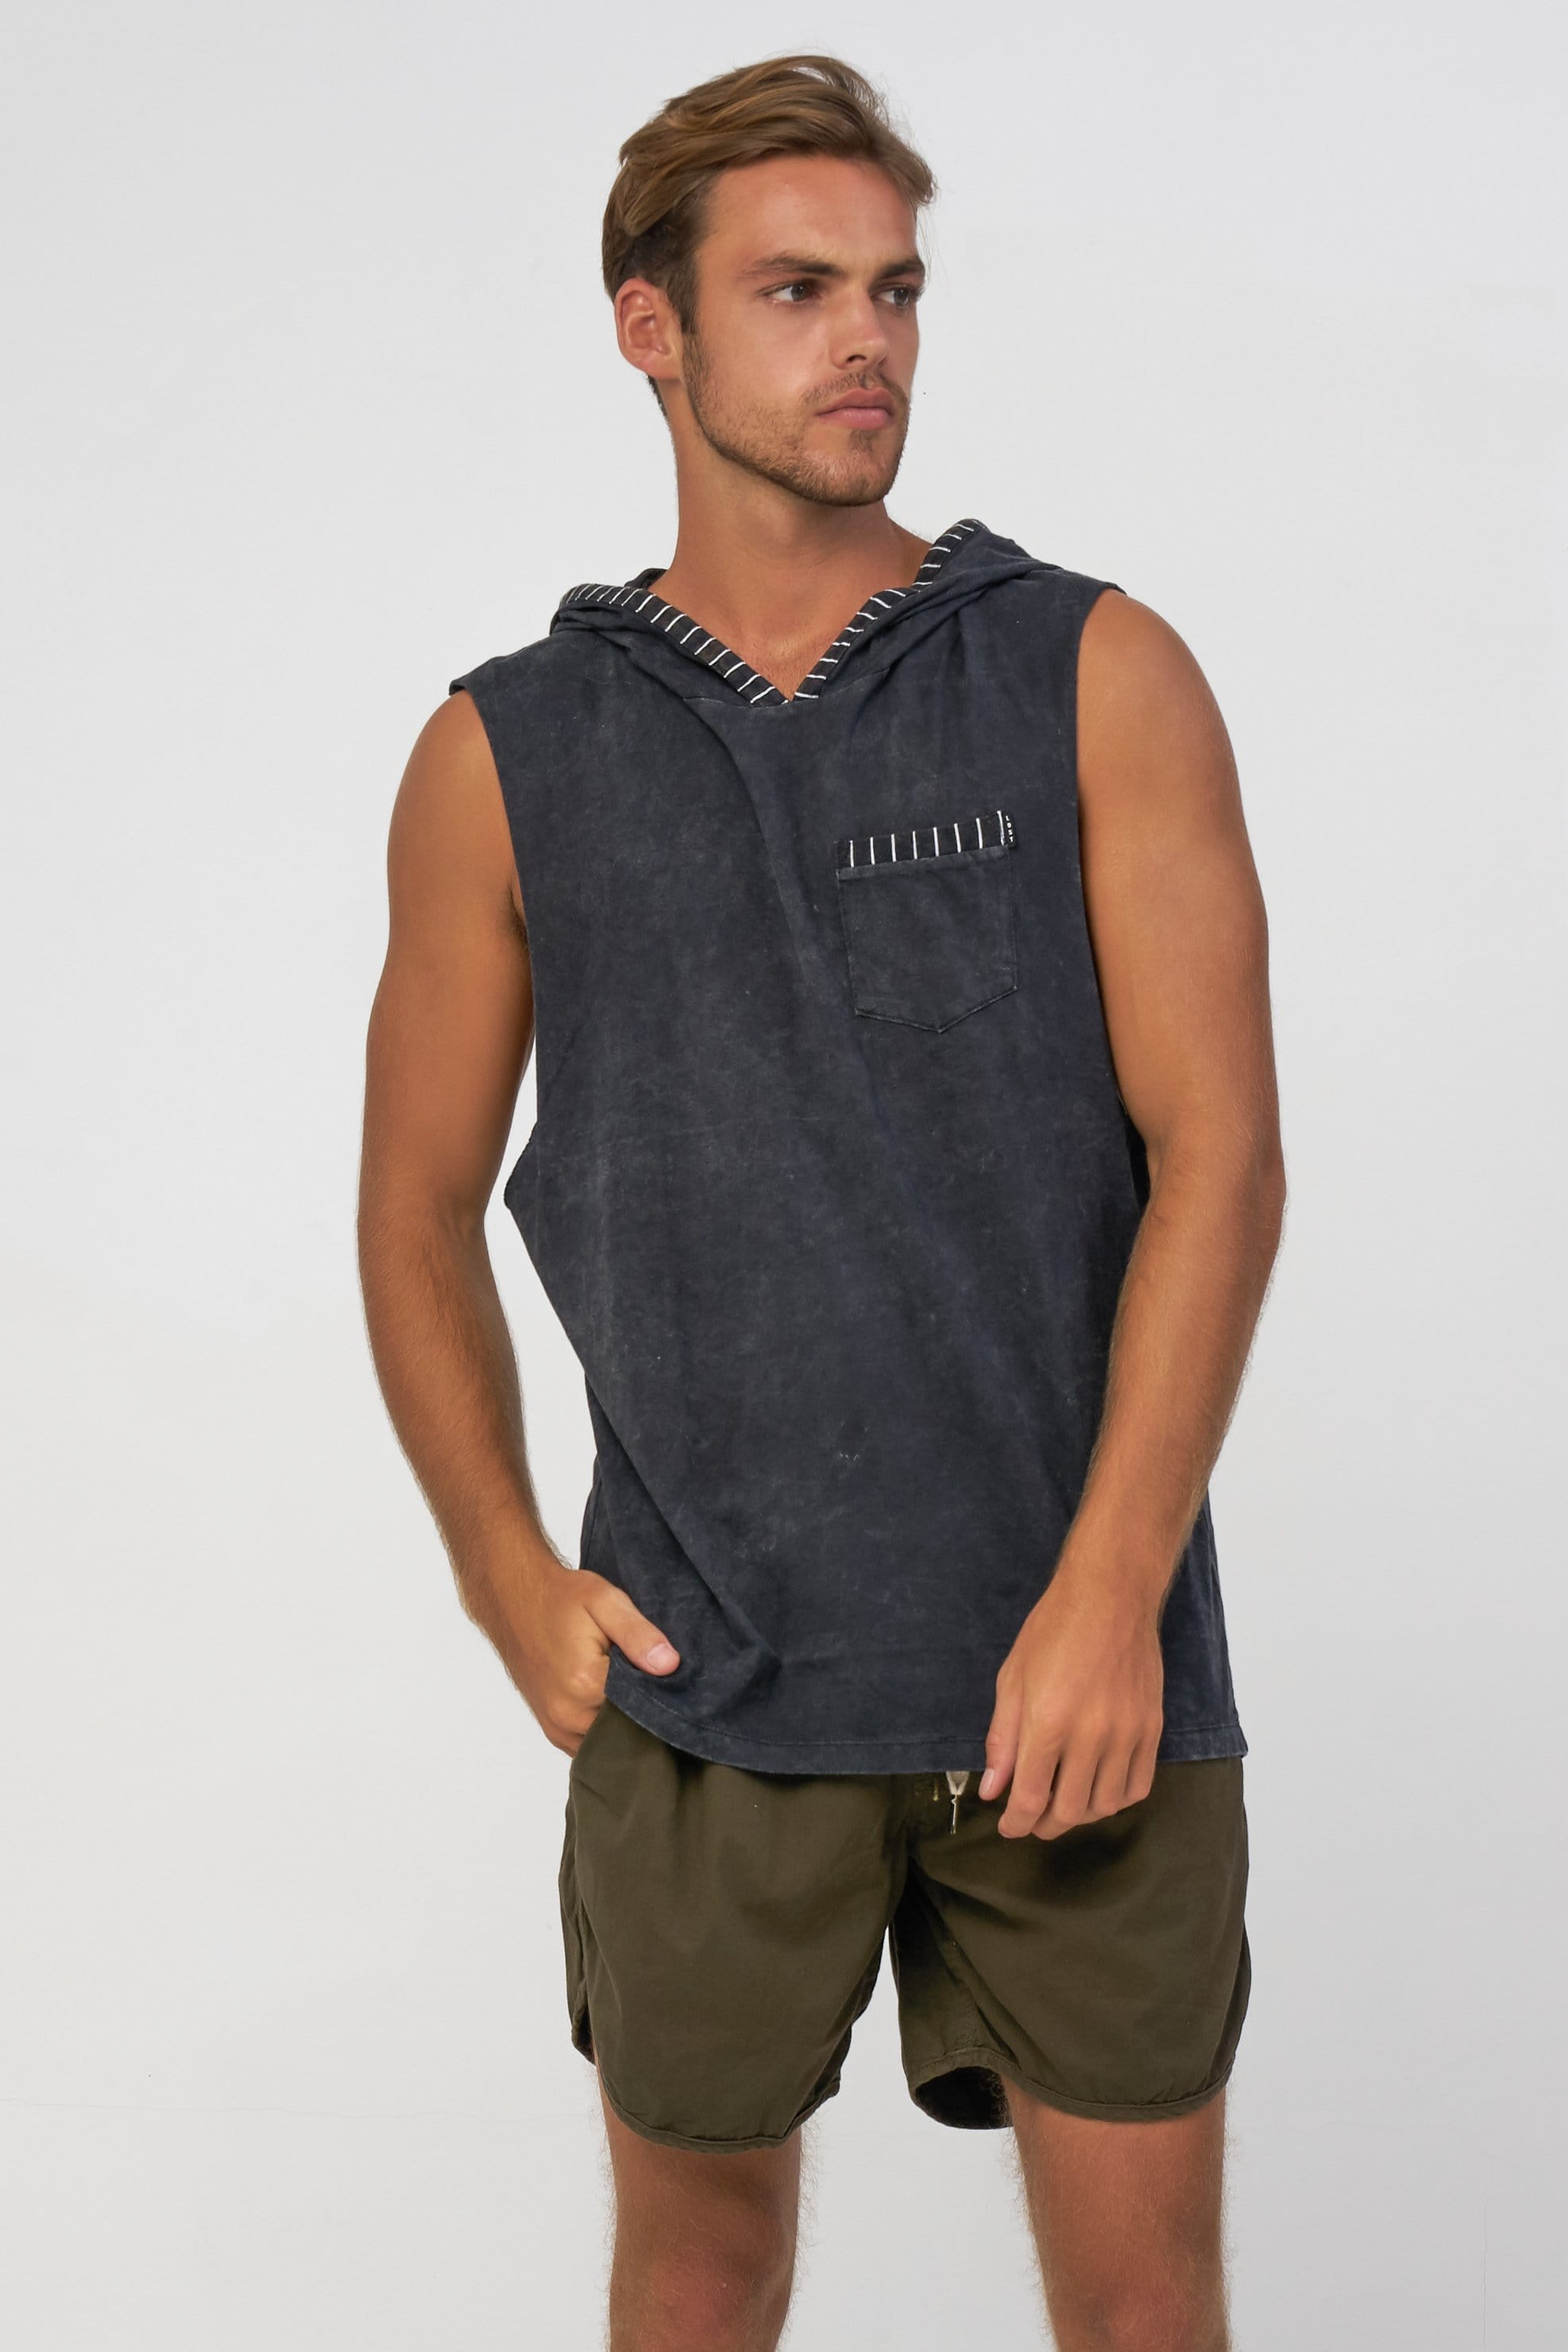 Line Hood - Mens Muscle Tank - LOST IN PARADISE